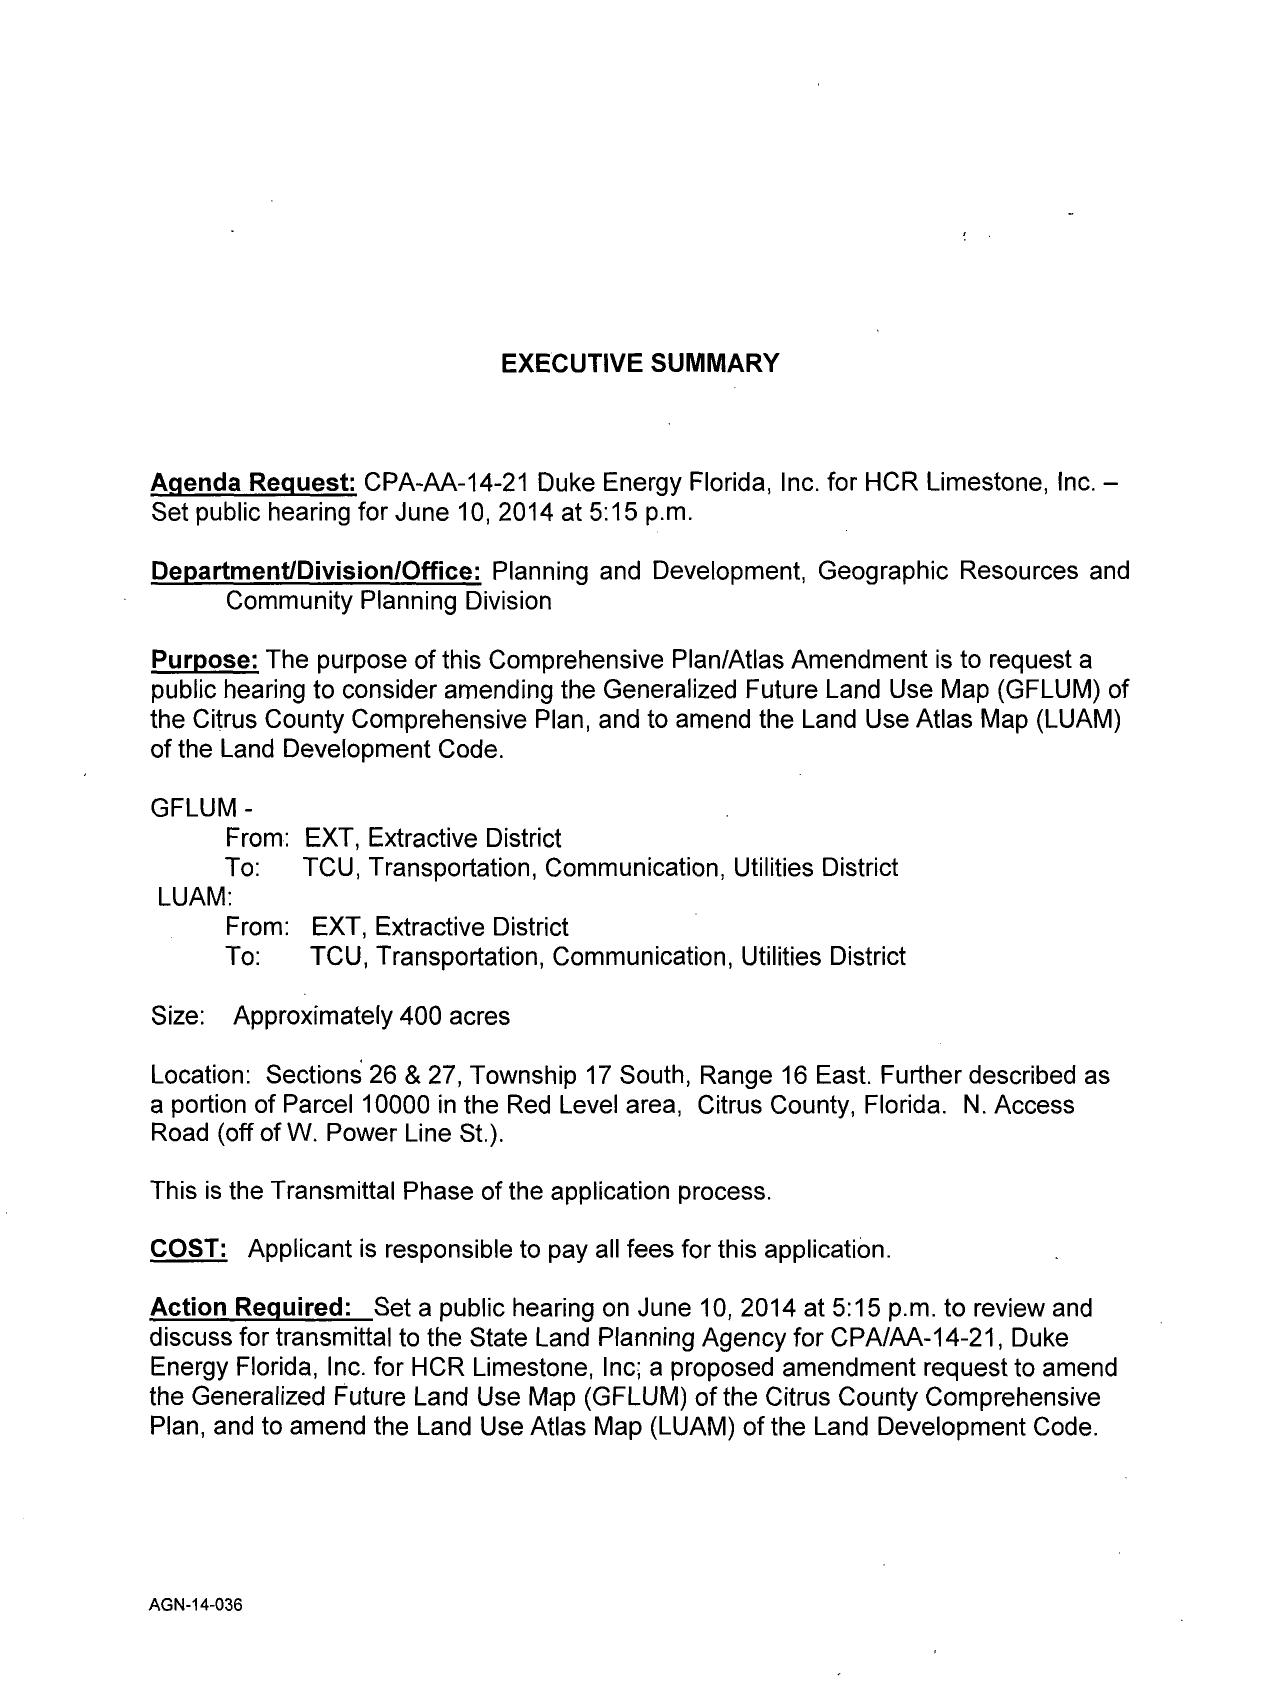 1271x1690 Executive Summary, in Re-designation to TCU, Transportation, Communication, Utilities District, by Duke Energy, for SpectraBusters.org, 27 May 2014